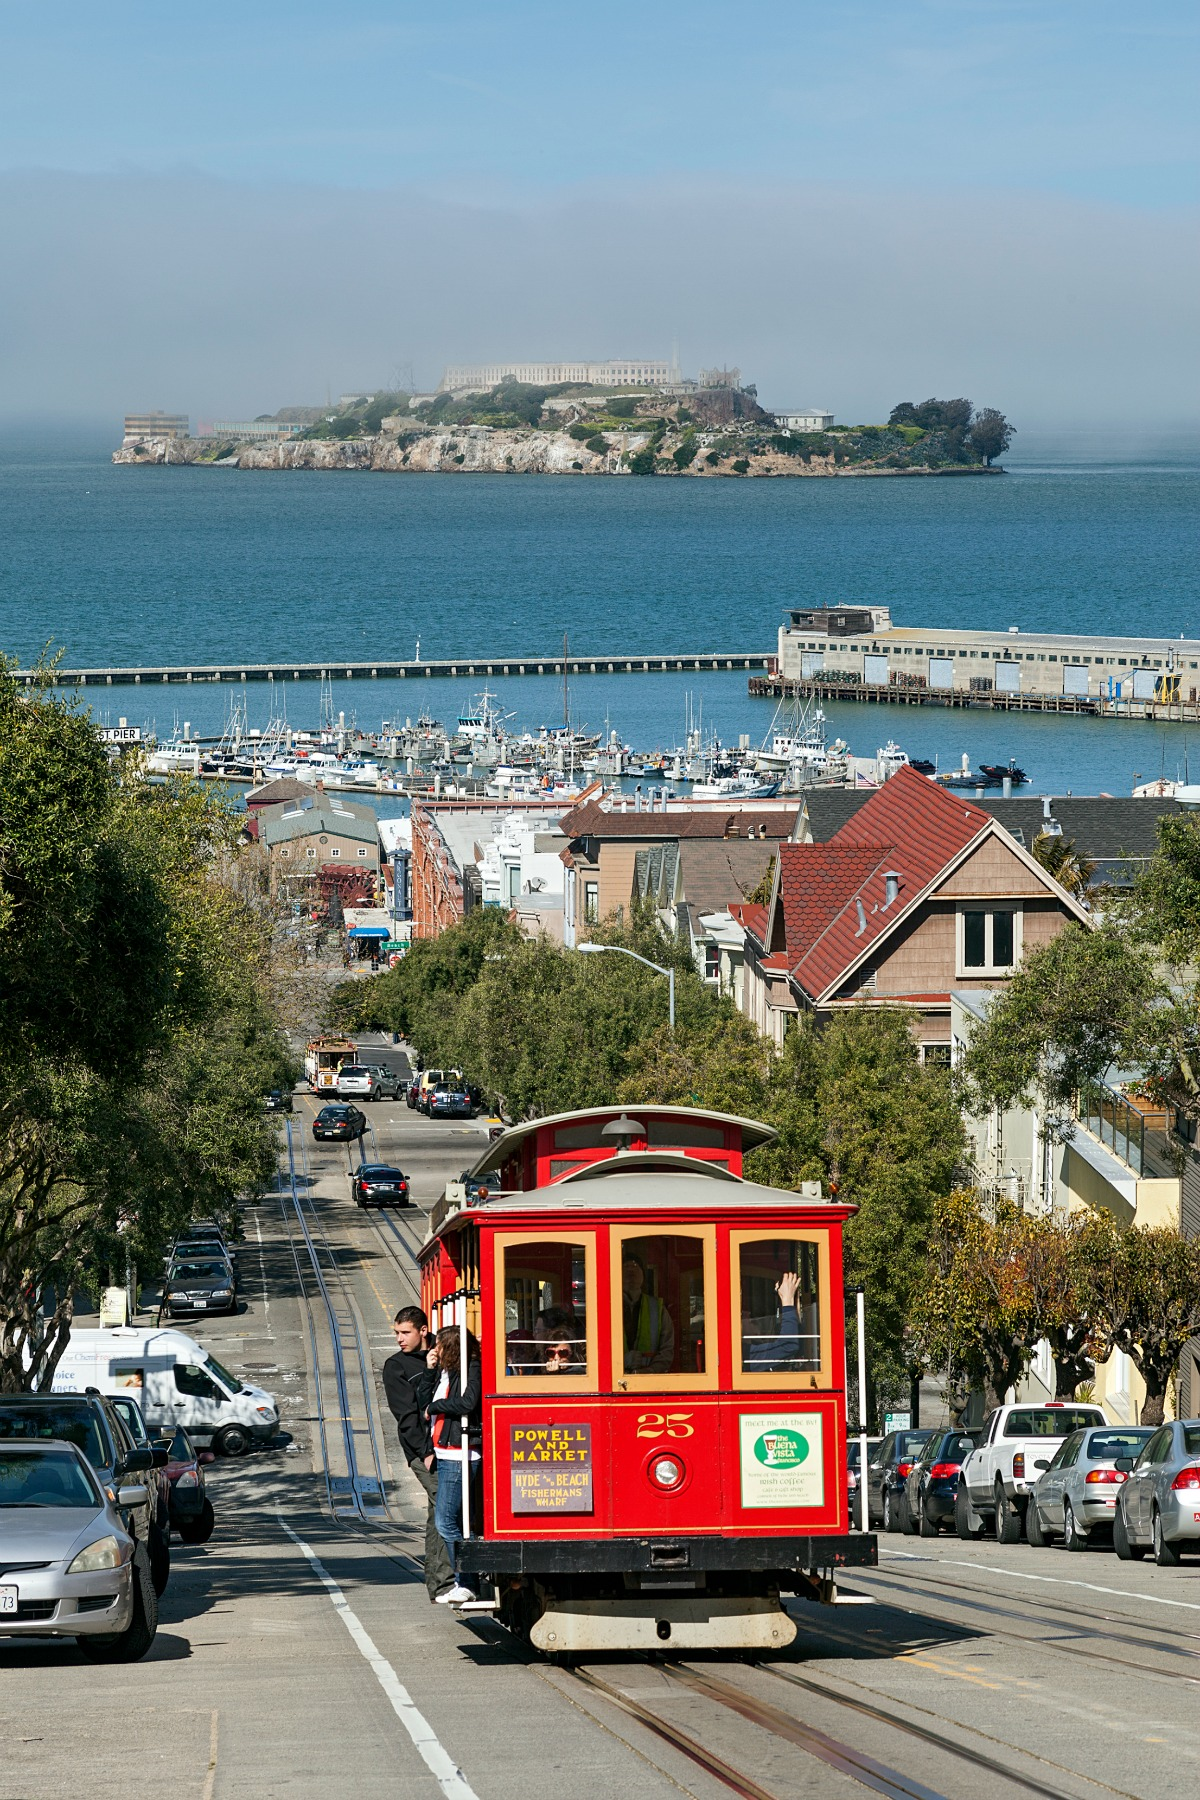 Go for a ride on a cable car in San Francisco